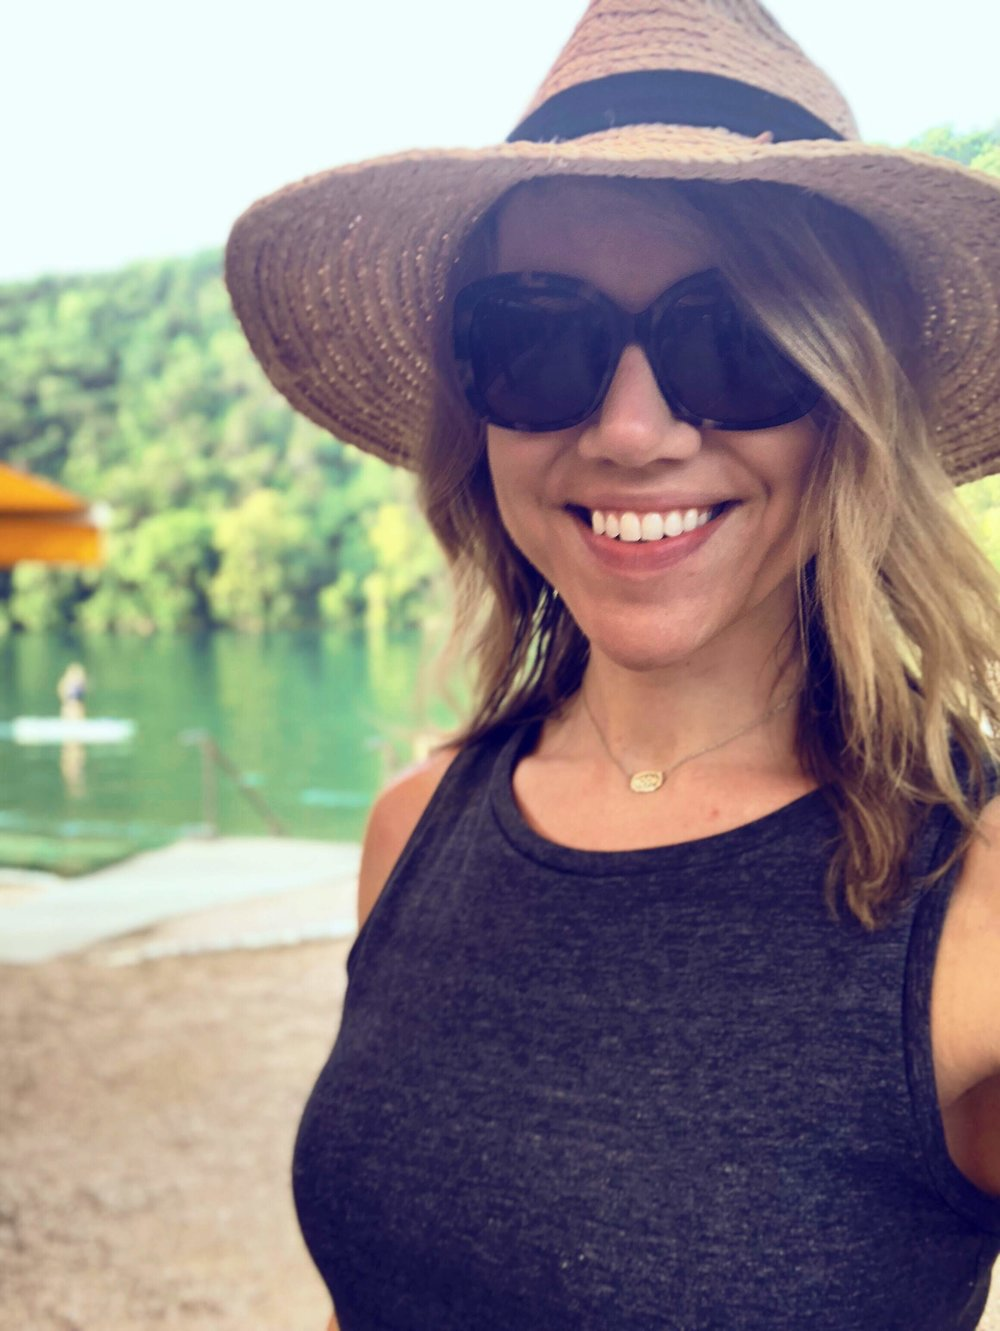 I've got my big hat, shades & a smile…pretty much all you need to enjoy a day at Lake Austin Spa Resort.